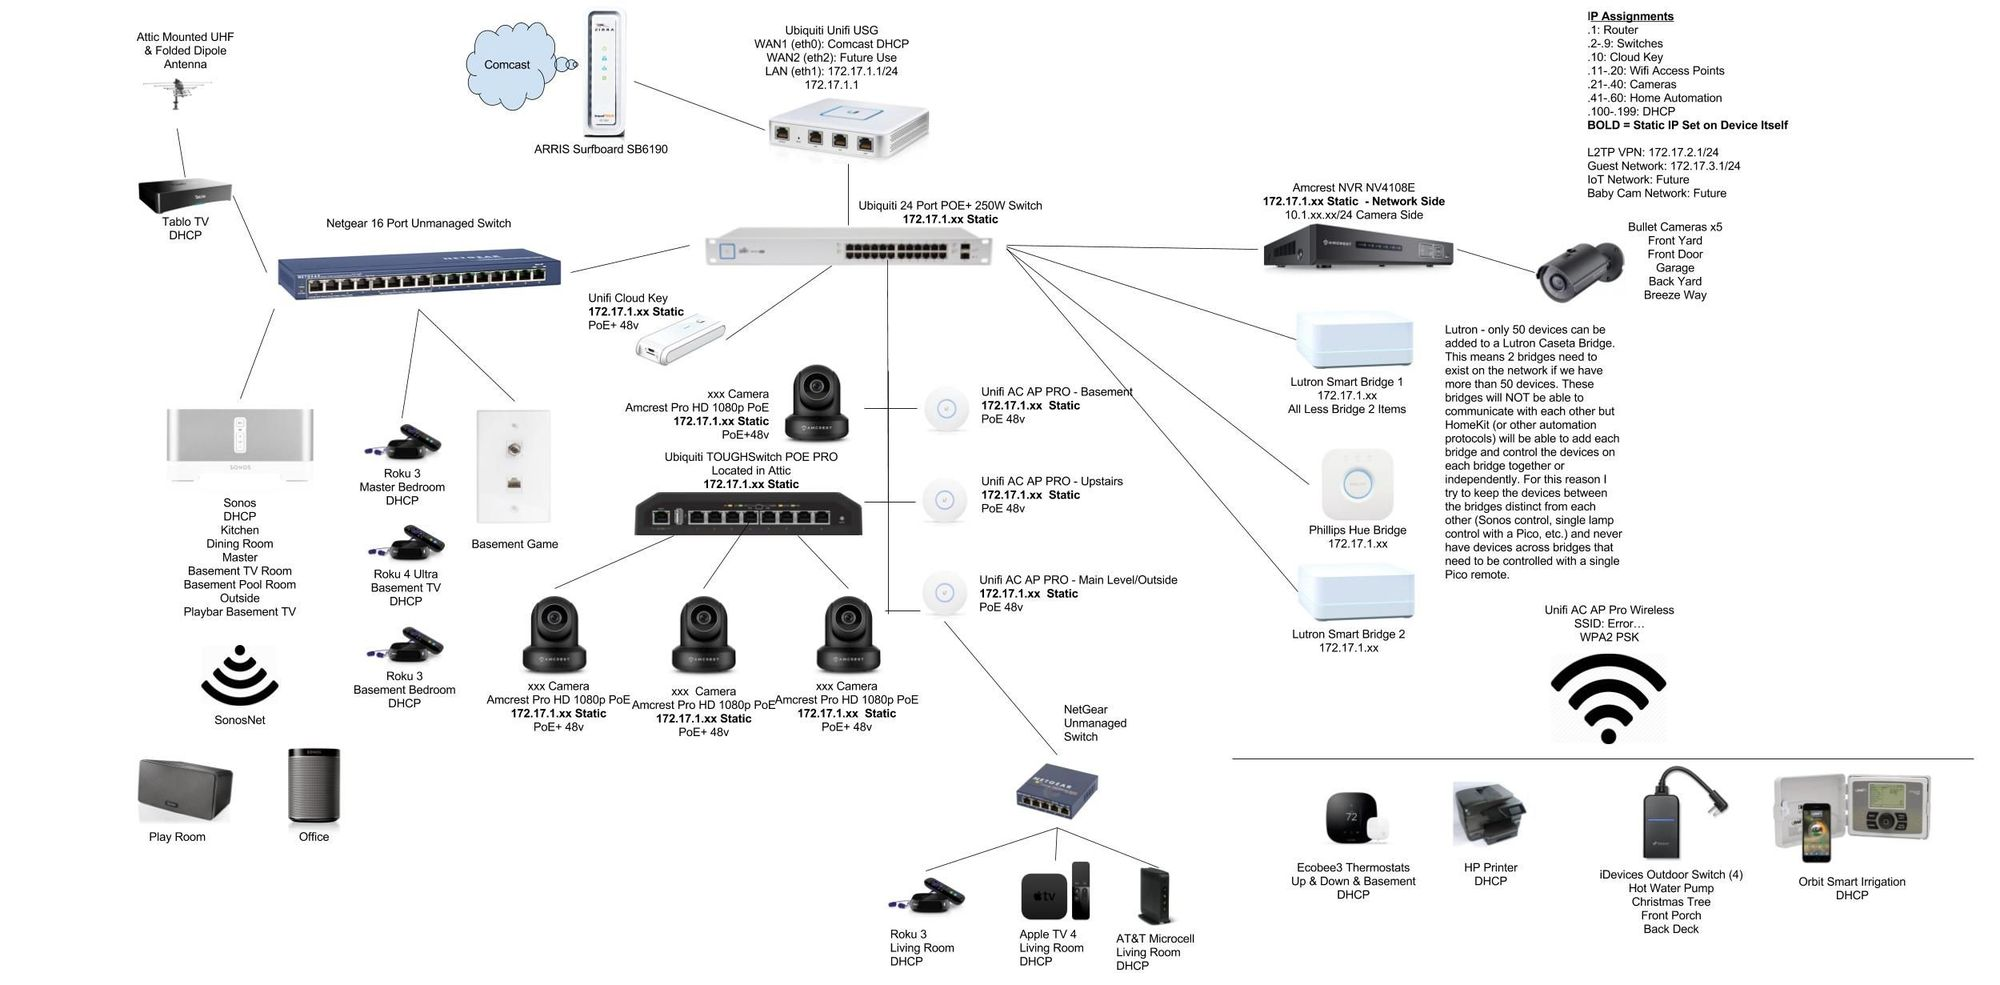 Network Drawings/Maps | Ubiquiti Community on